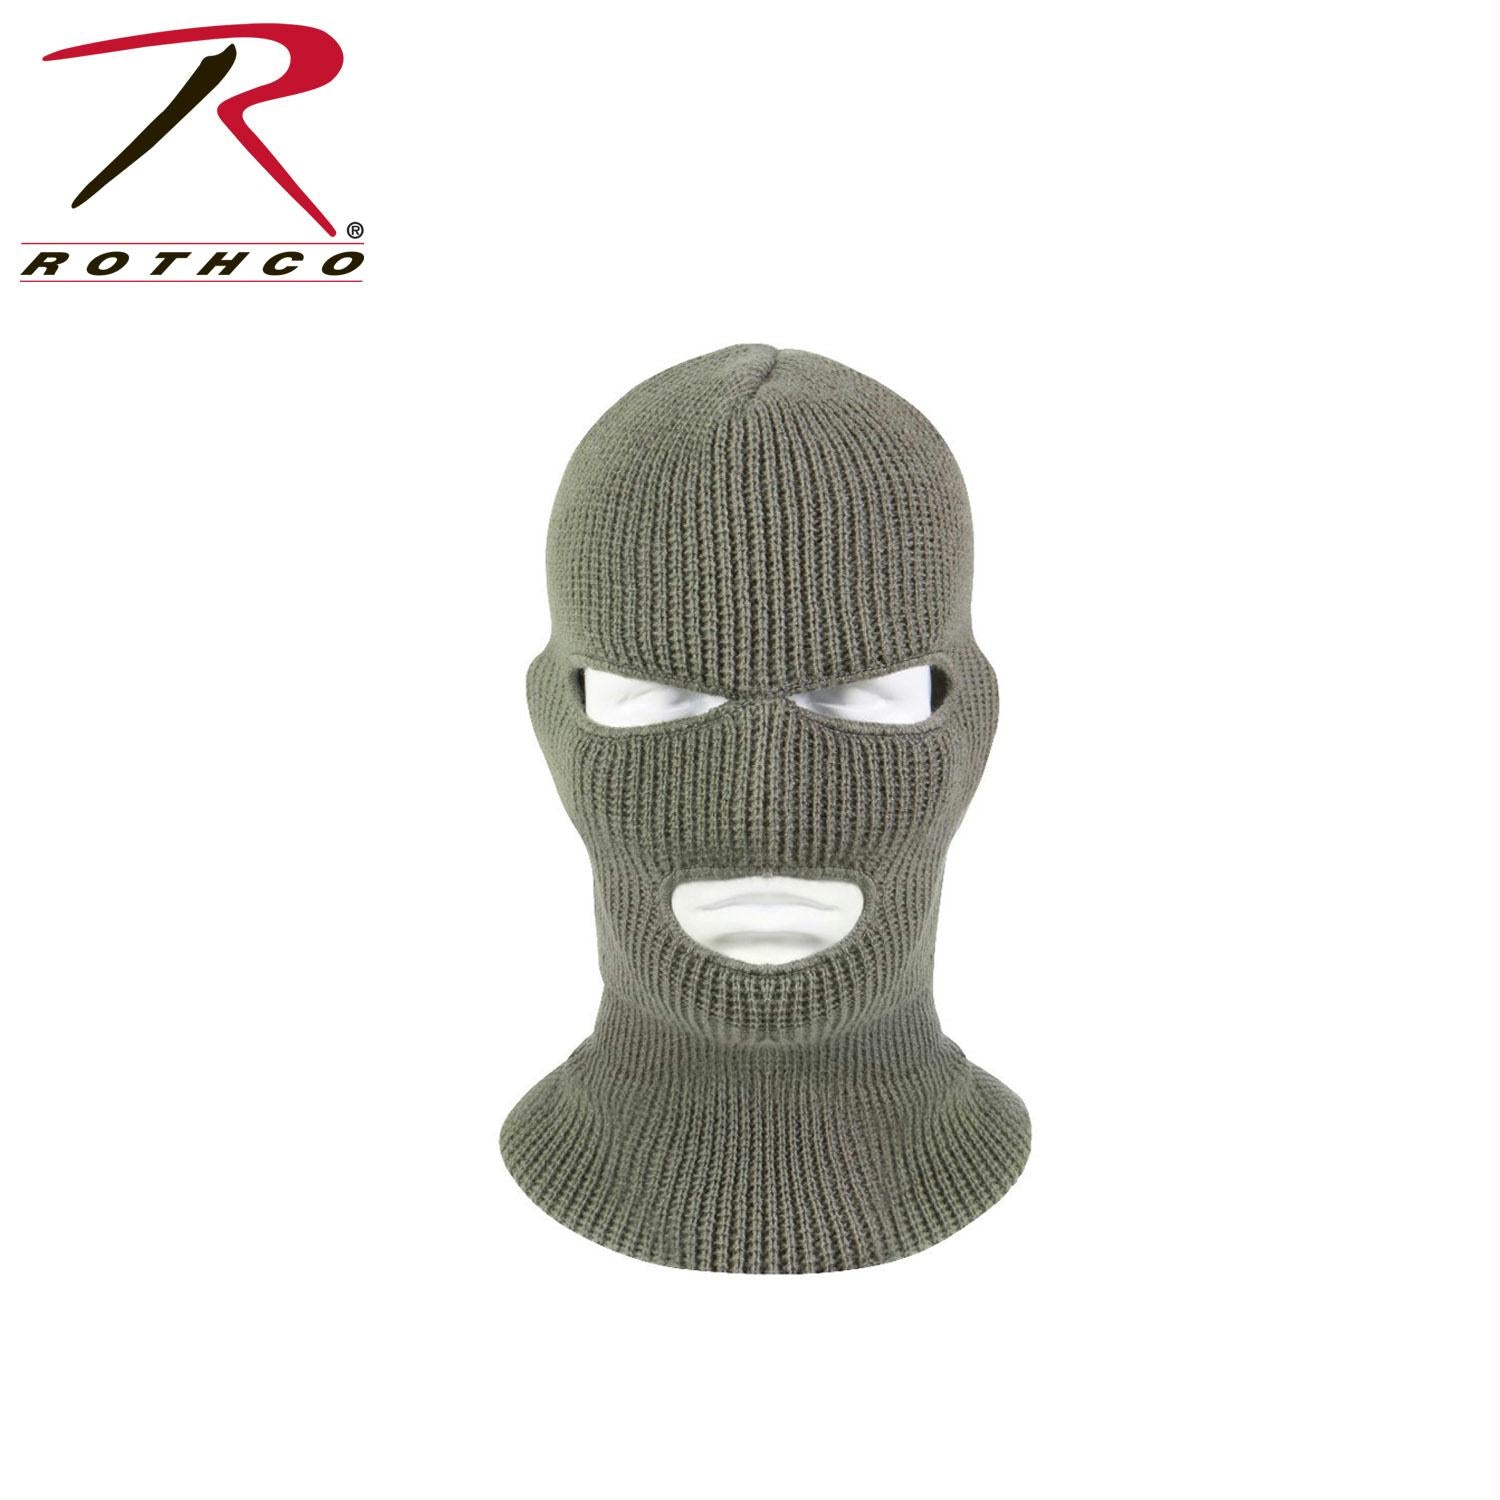 Rothco 3 Hole Face Mask - Foliage Green